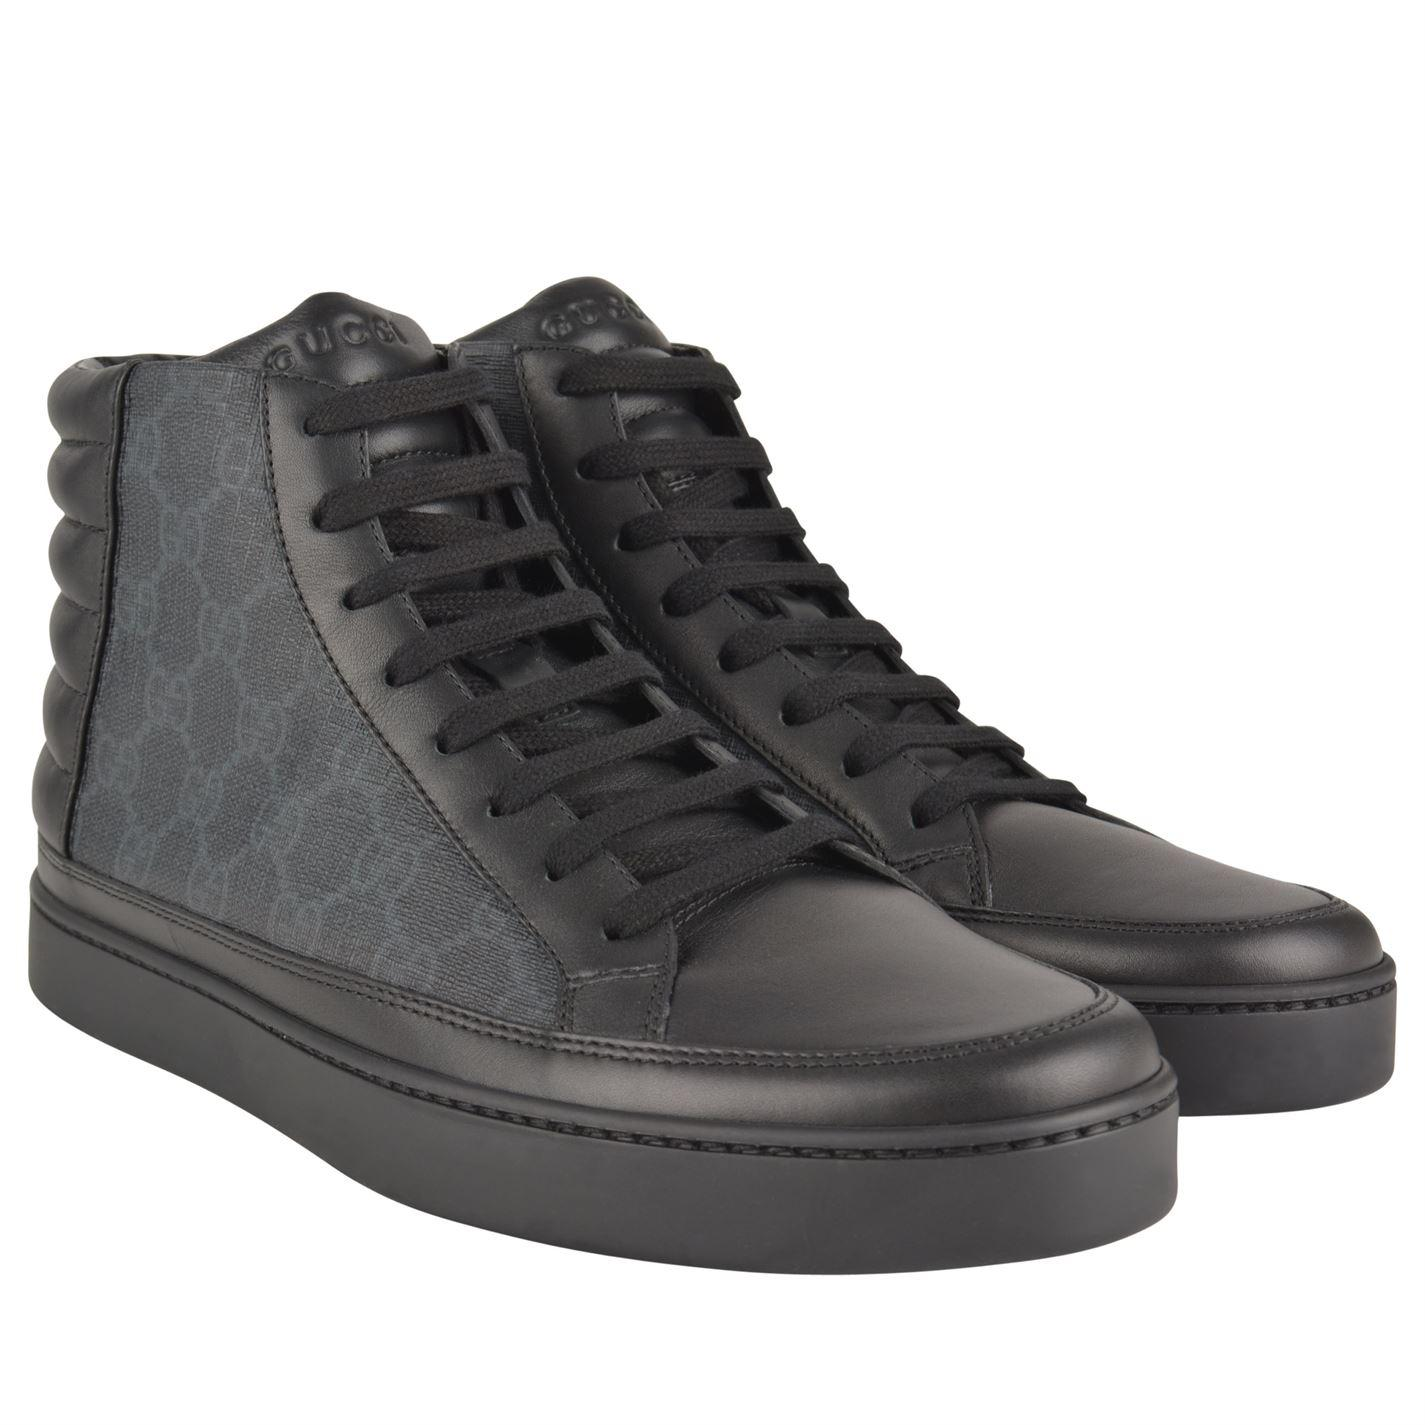 a148c7f33638 Gucci - Black Common High Gg Trainers for Men - Lyst. View fullscreen